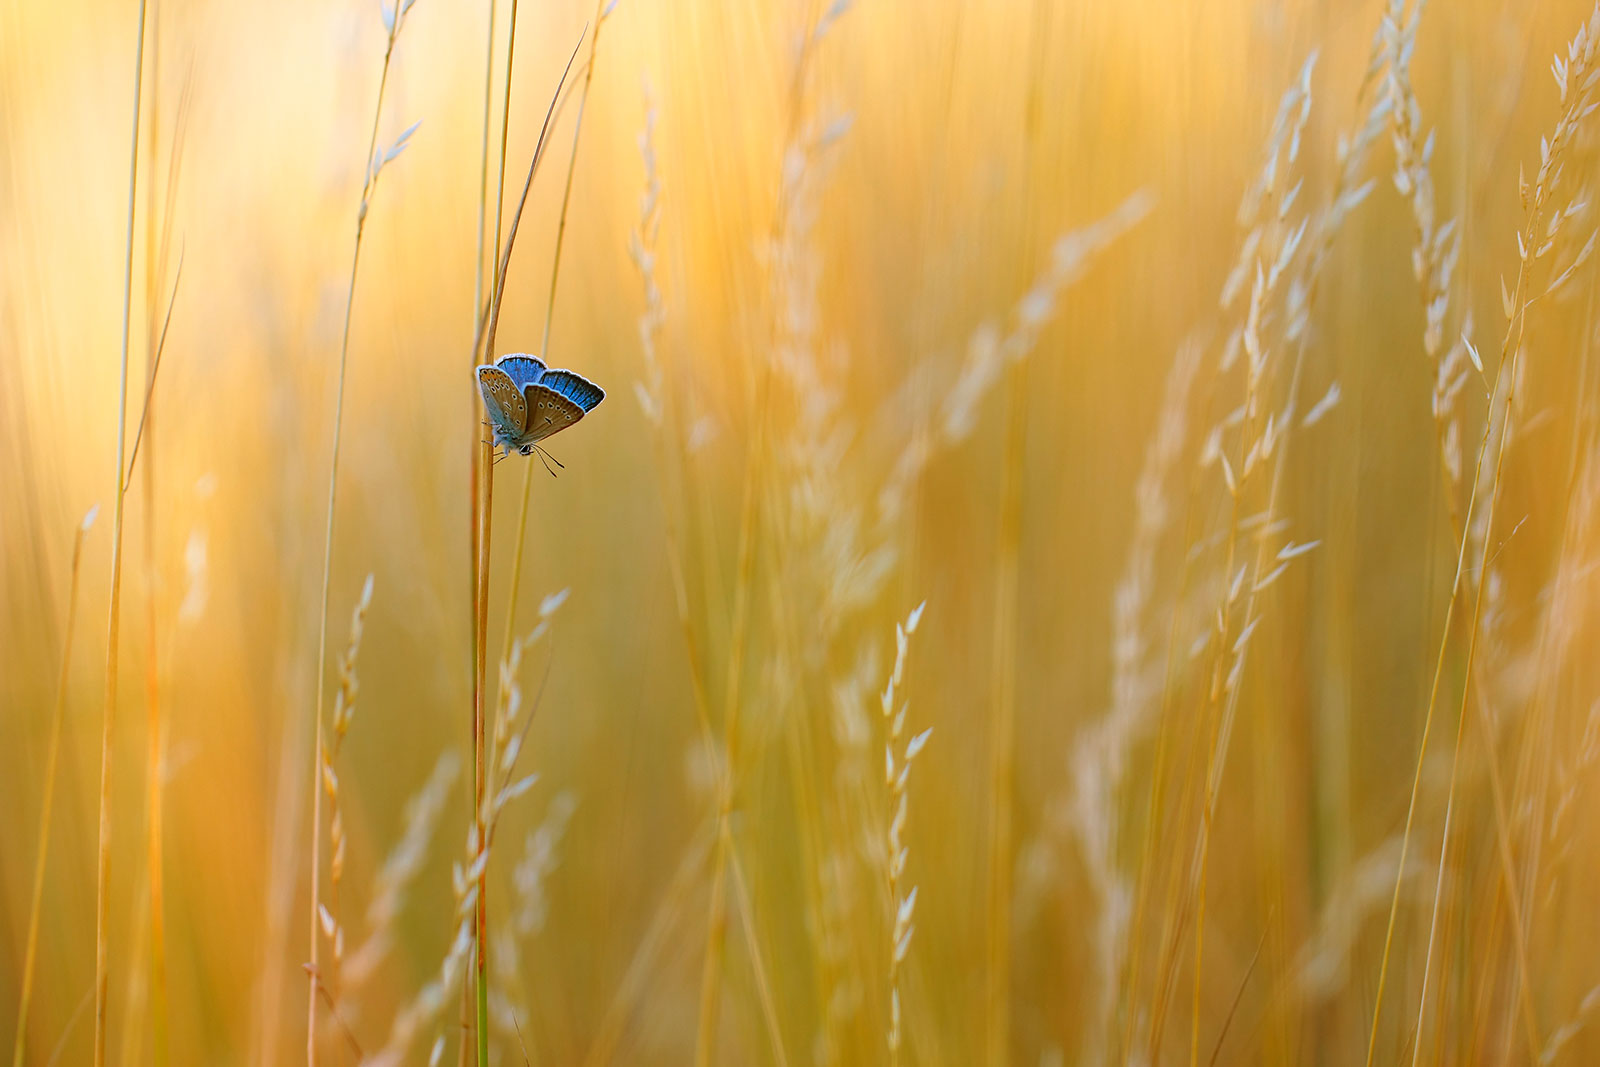 Just Blue, © Marek Mierzejewski, Winner in category Welcoming Garden Wildlife, RHS Photographic Competition / RHS Gardening